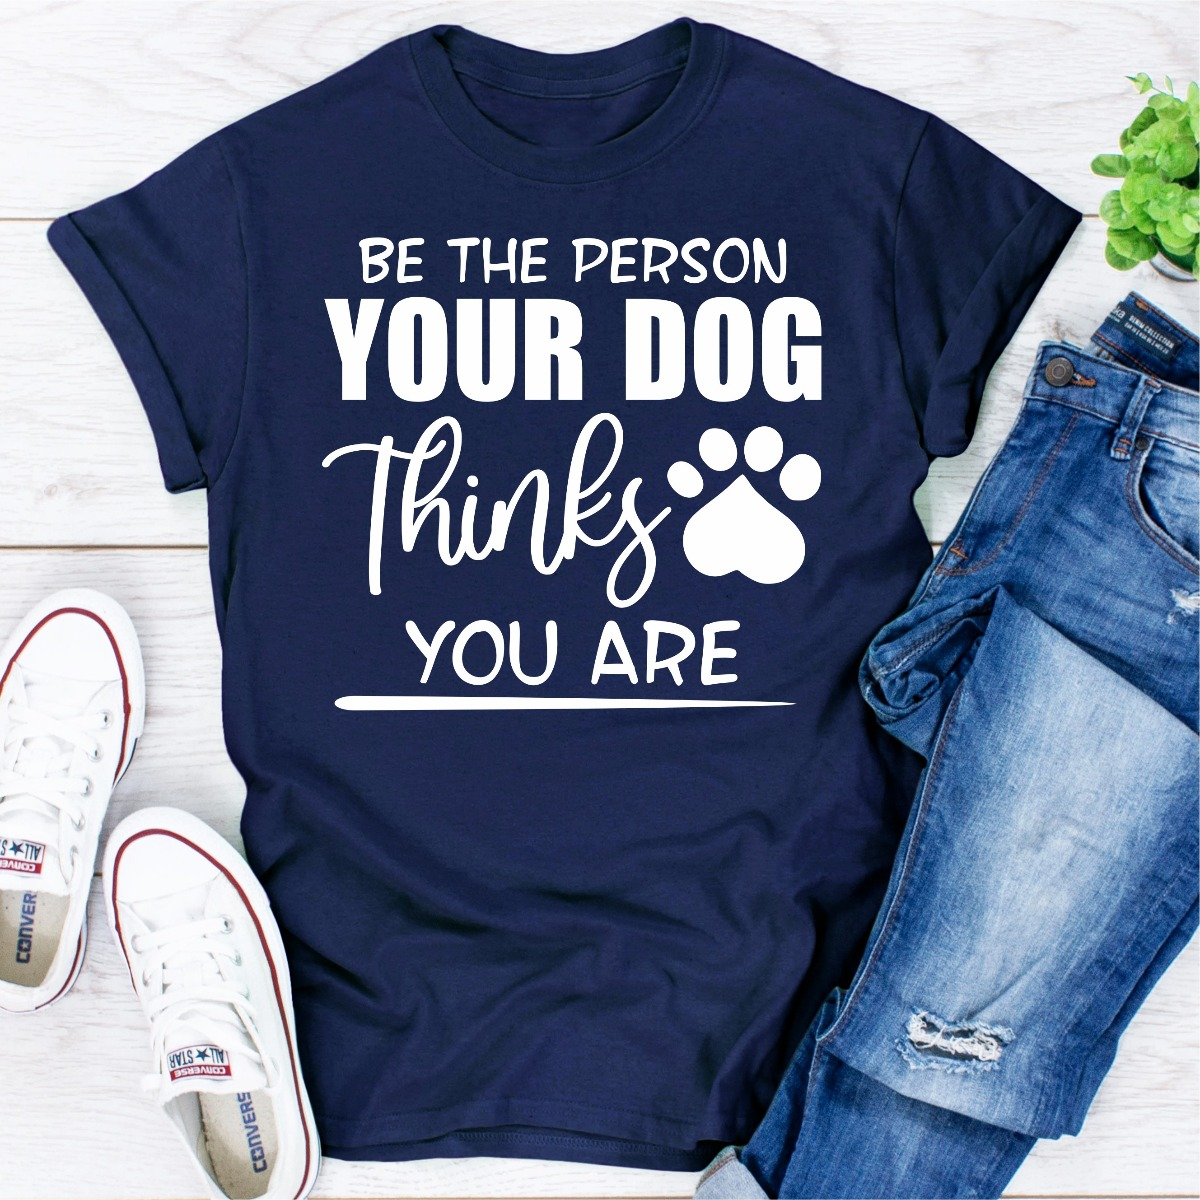 Be The Person Your Dog Thinks You Are (Navy / M)